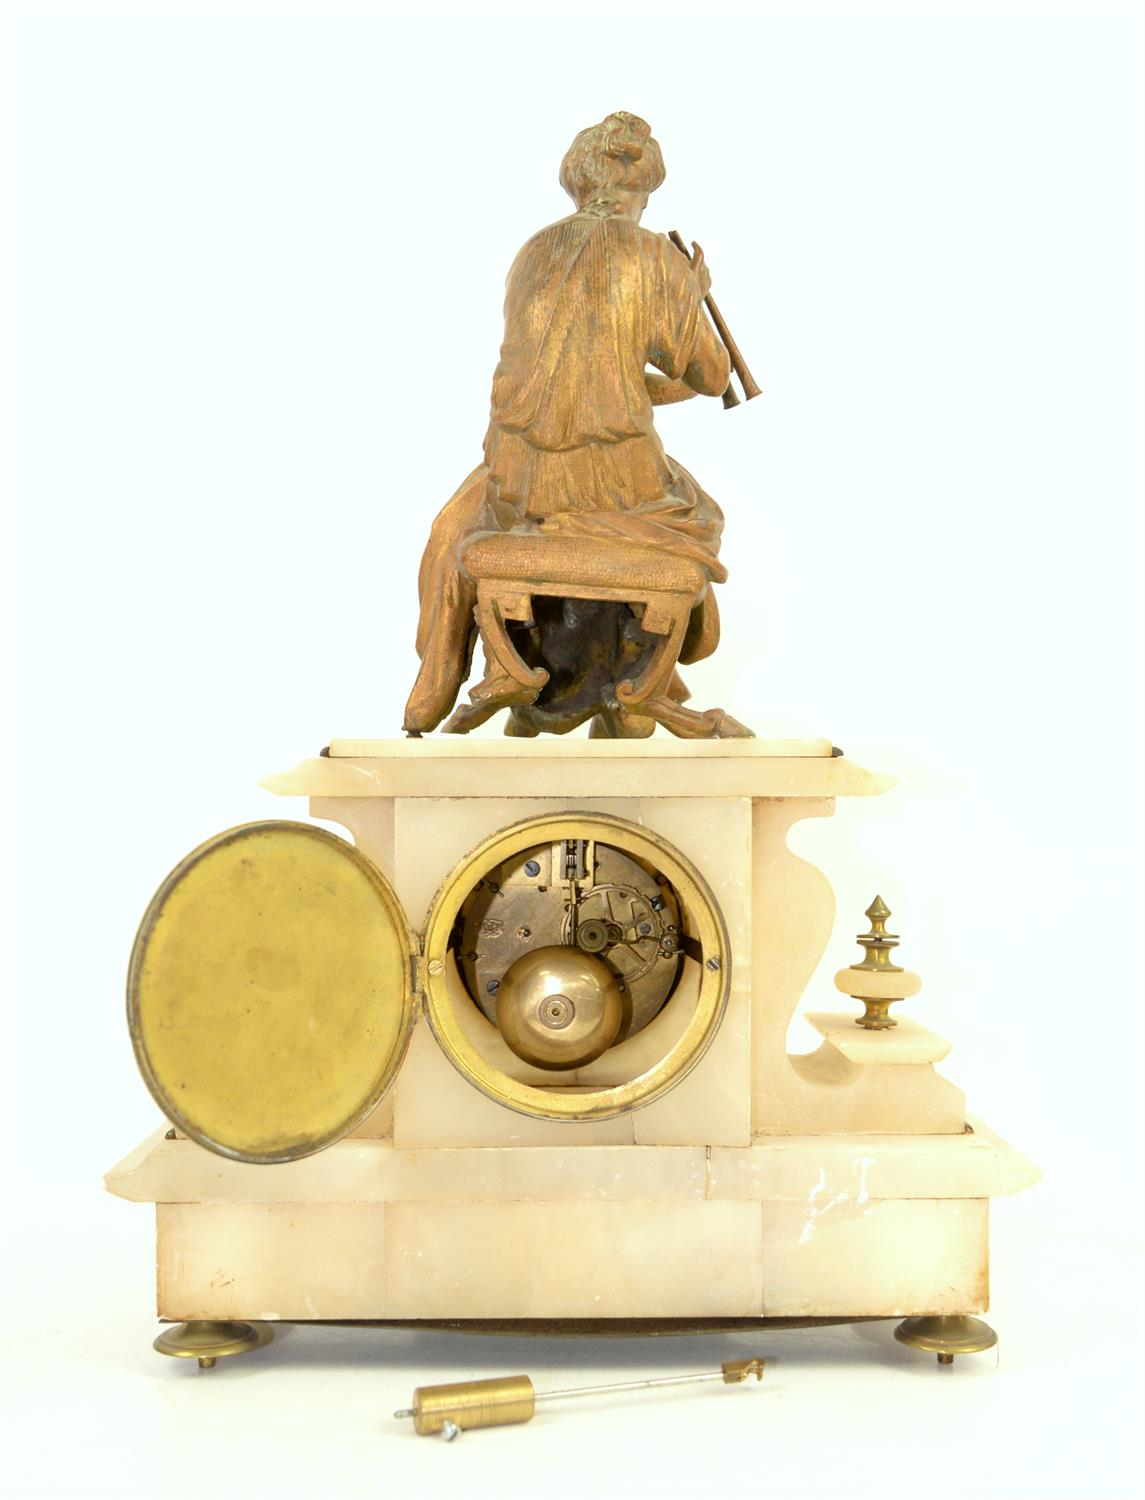 French alabaster mantel clock with spelter figure of a classical lady playing music, - Image 2 of 2